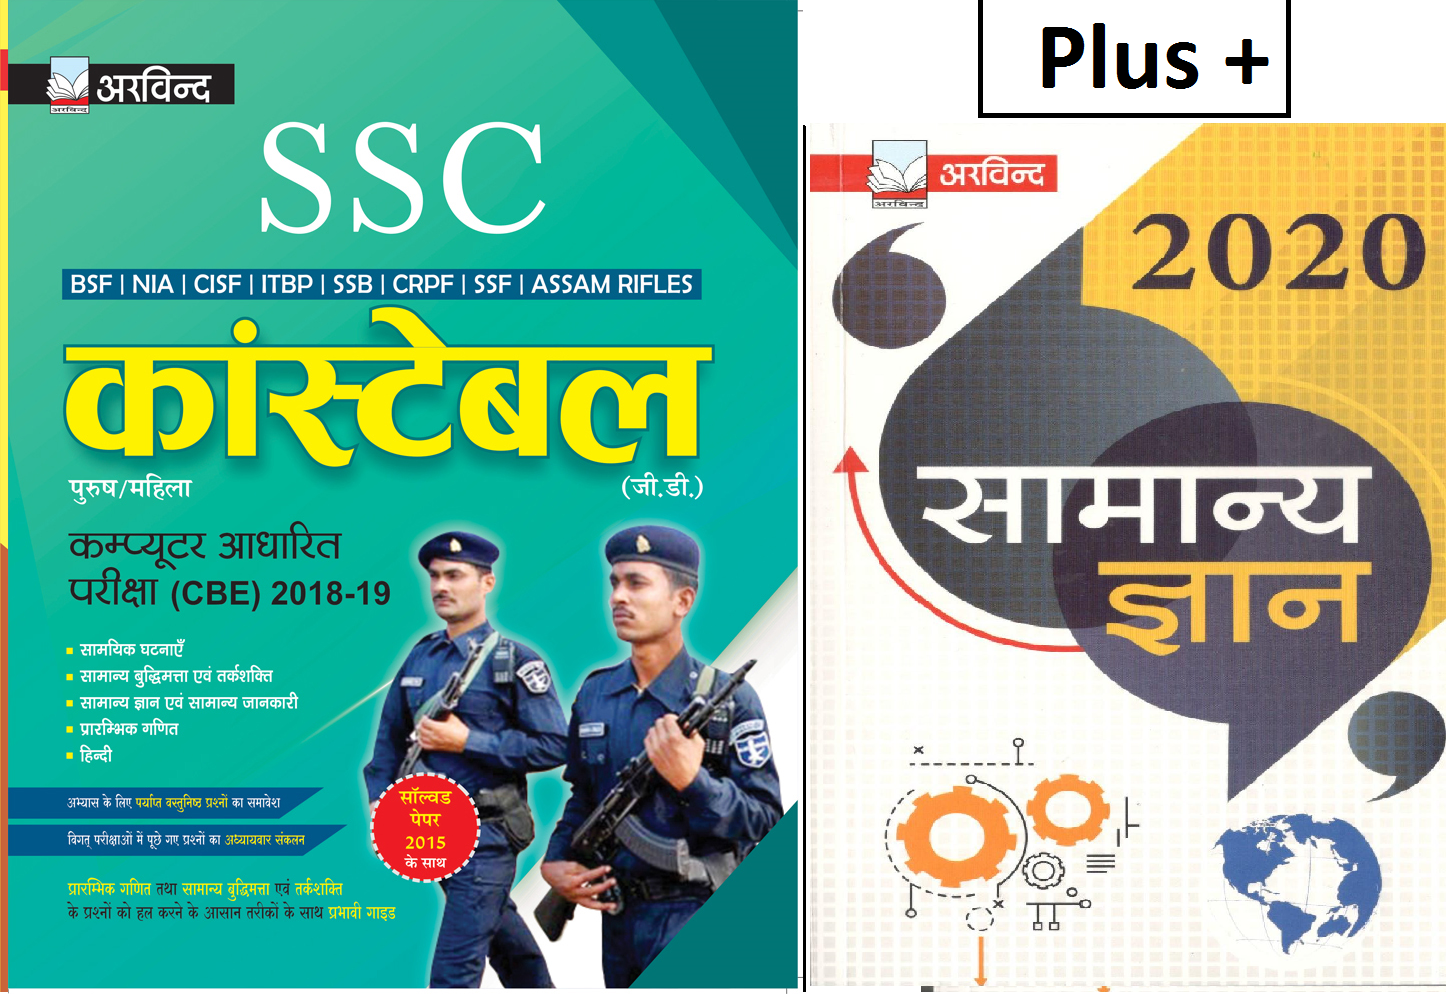 SSC GD Constable Guide & G.K Samanya Gyan 2020 in Hindi for preparation